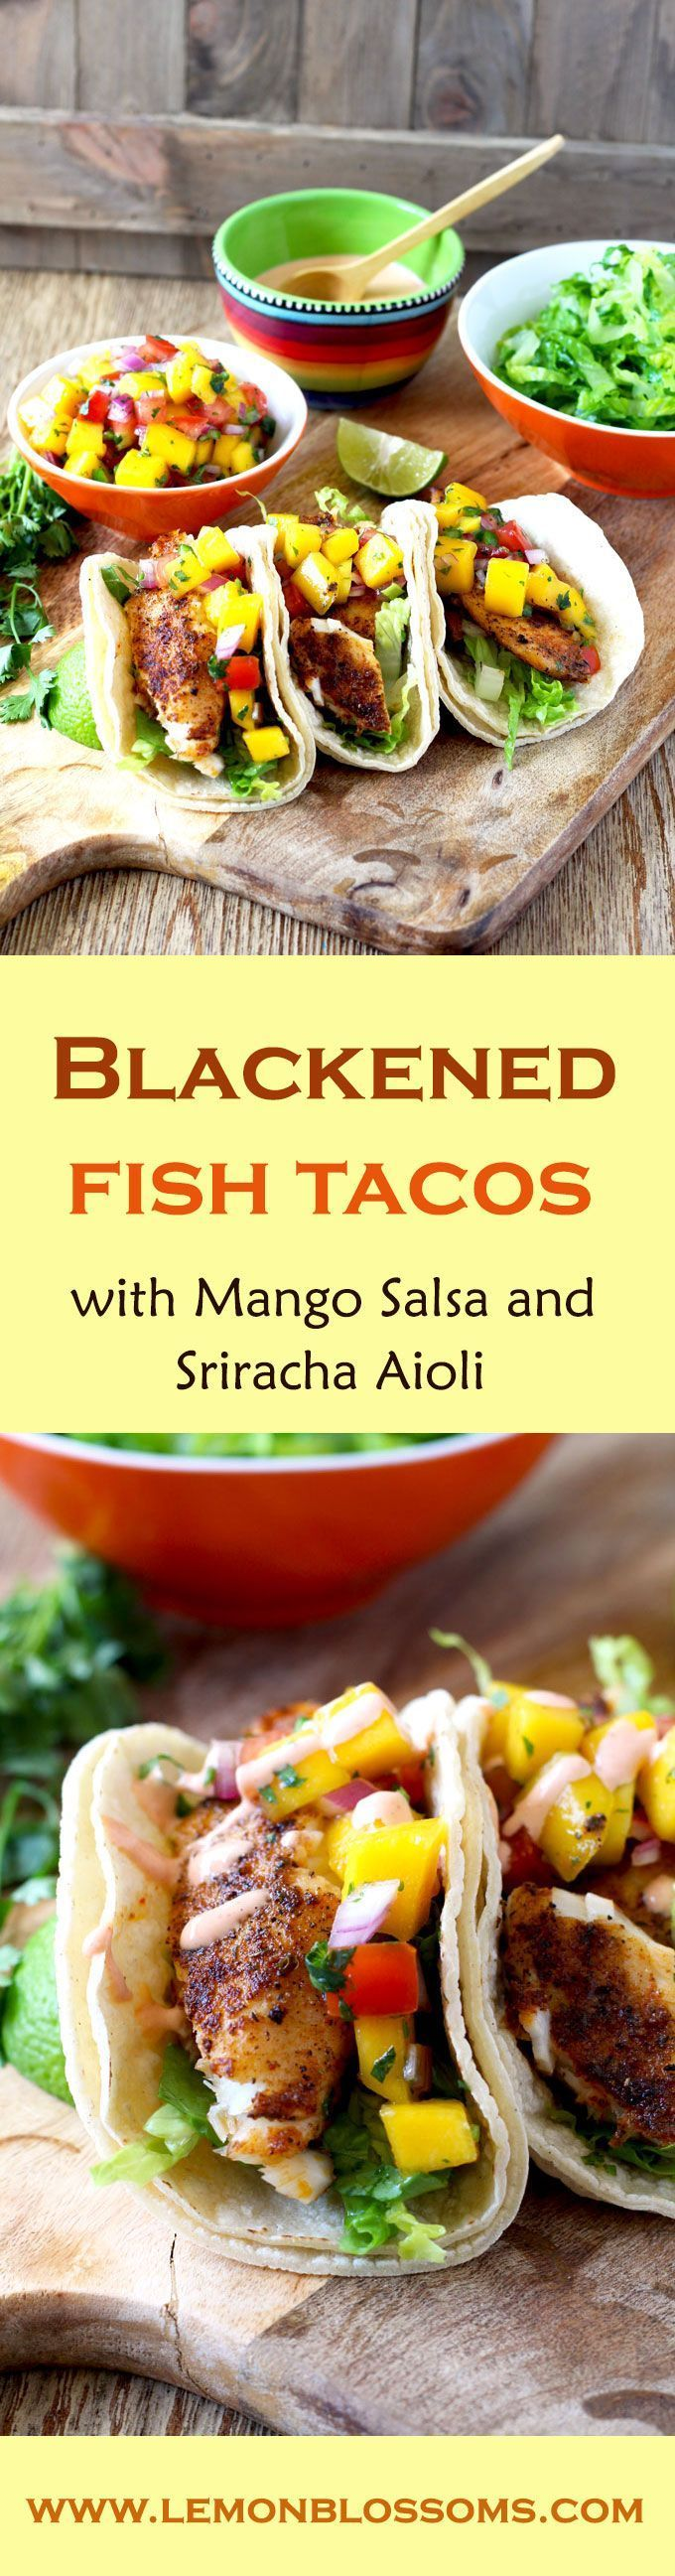 Full flavored, healthy and easy to make Blackened Fish Tacos with Mango Salsa and Sriracha Aioli. Fish fillets coated in a Cajun inspired spice mix served in warm tortillas and topped with a fresh and tasty mango salsa. Finish it up with a drizzle of creamy and spicy sriracha aioli for the best tacos ever!!! via @https://www.pinterest.com/lmnblossoms/?utm_content=buffer5da45&utm_medium=social&utm_source=pinterest.com&utm_campaign=buffer: